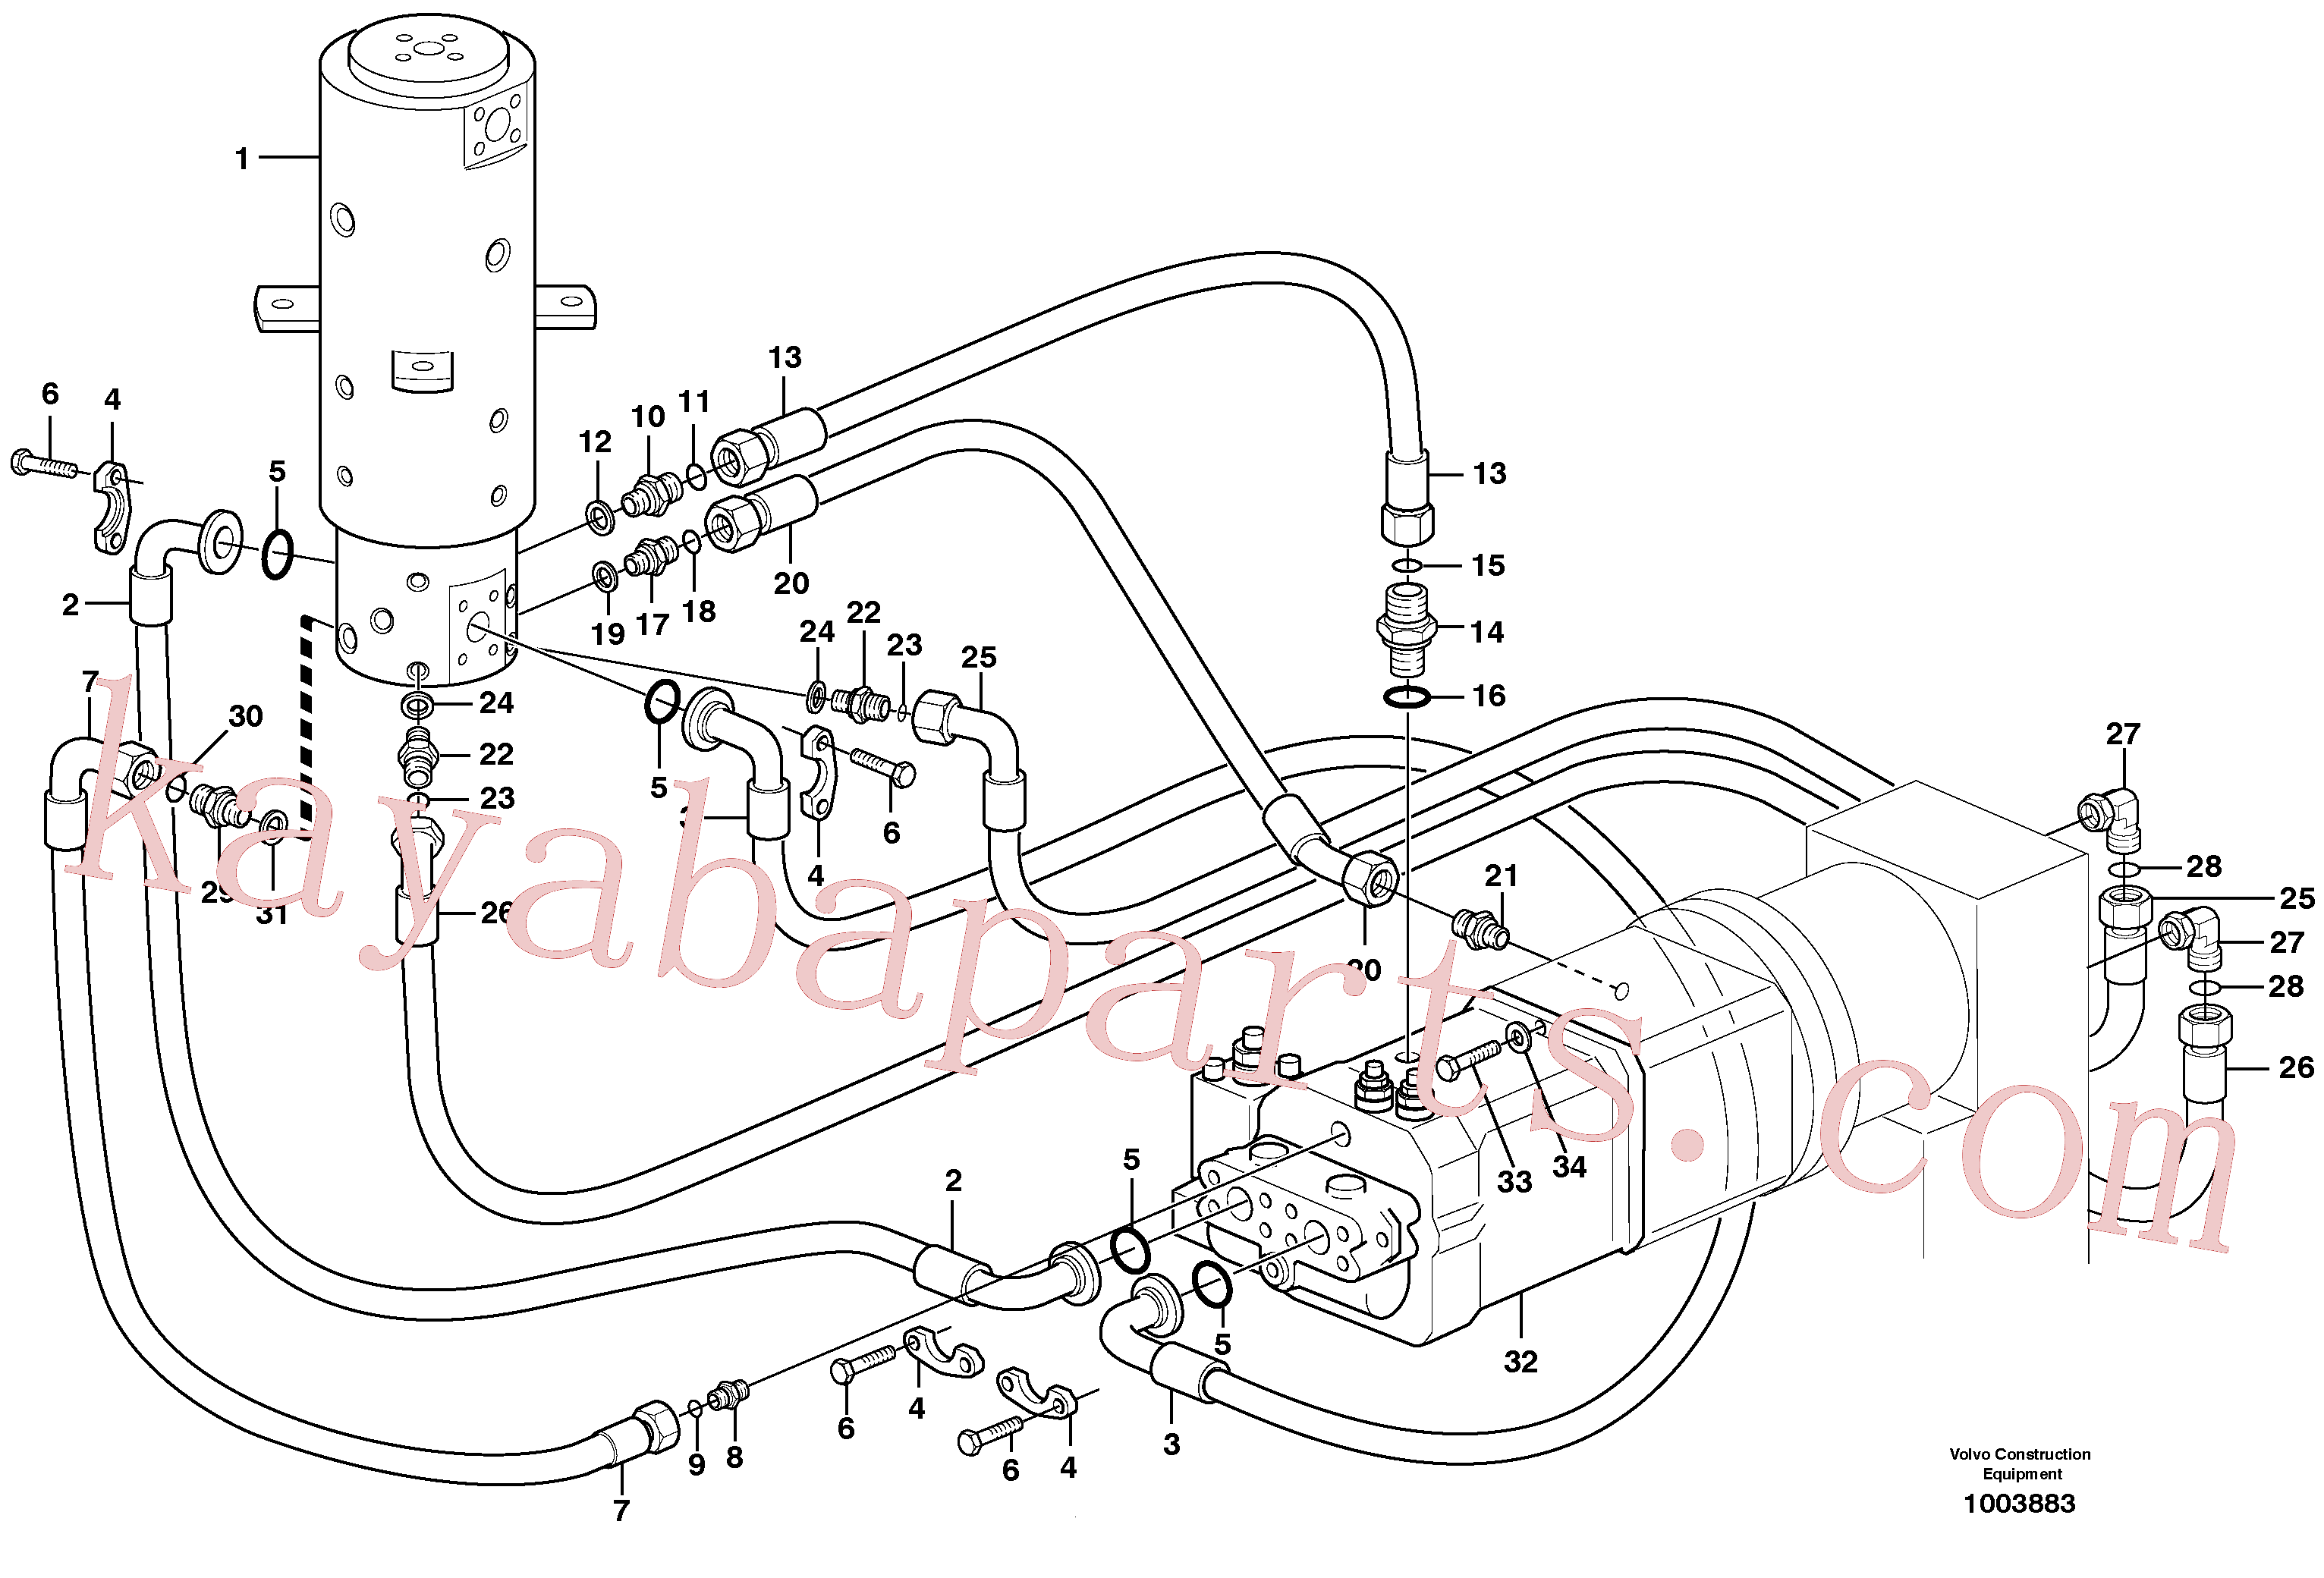 VOE11883022 for Volvo Hydraulic system, transport in undercarrige(1003883 assembly)